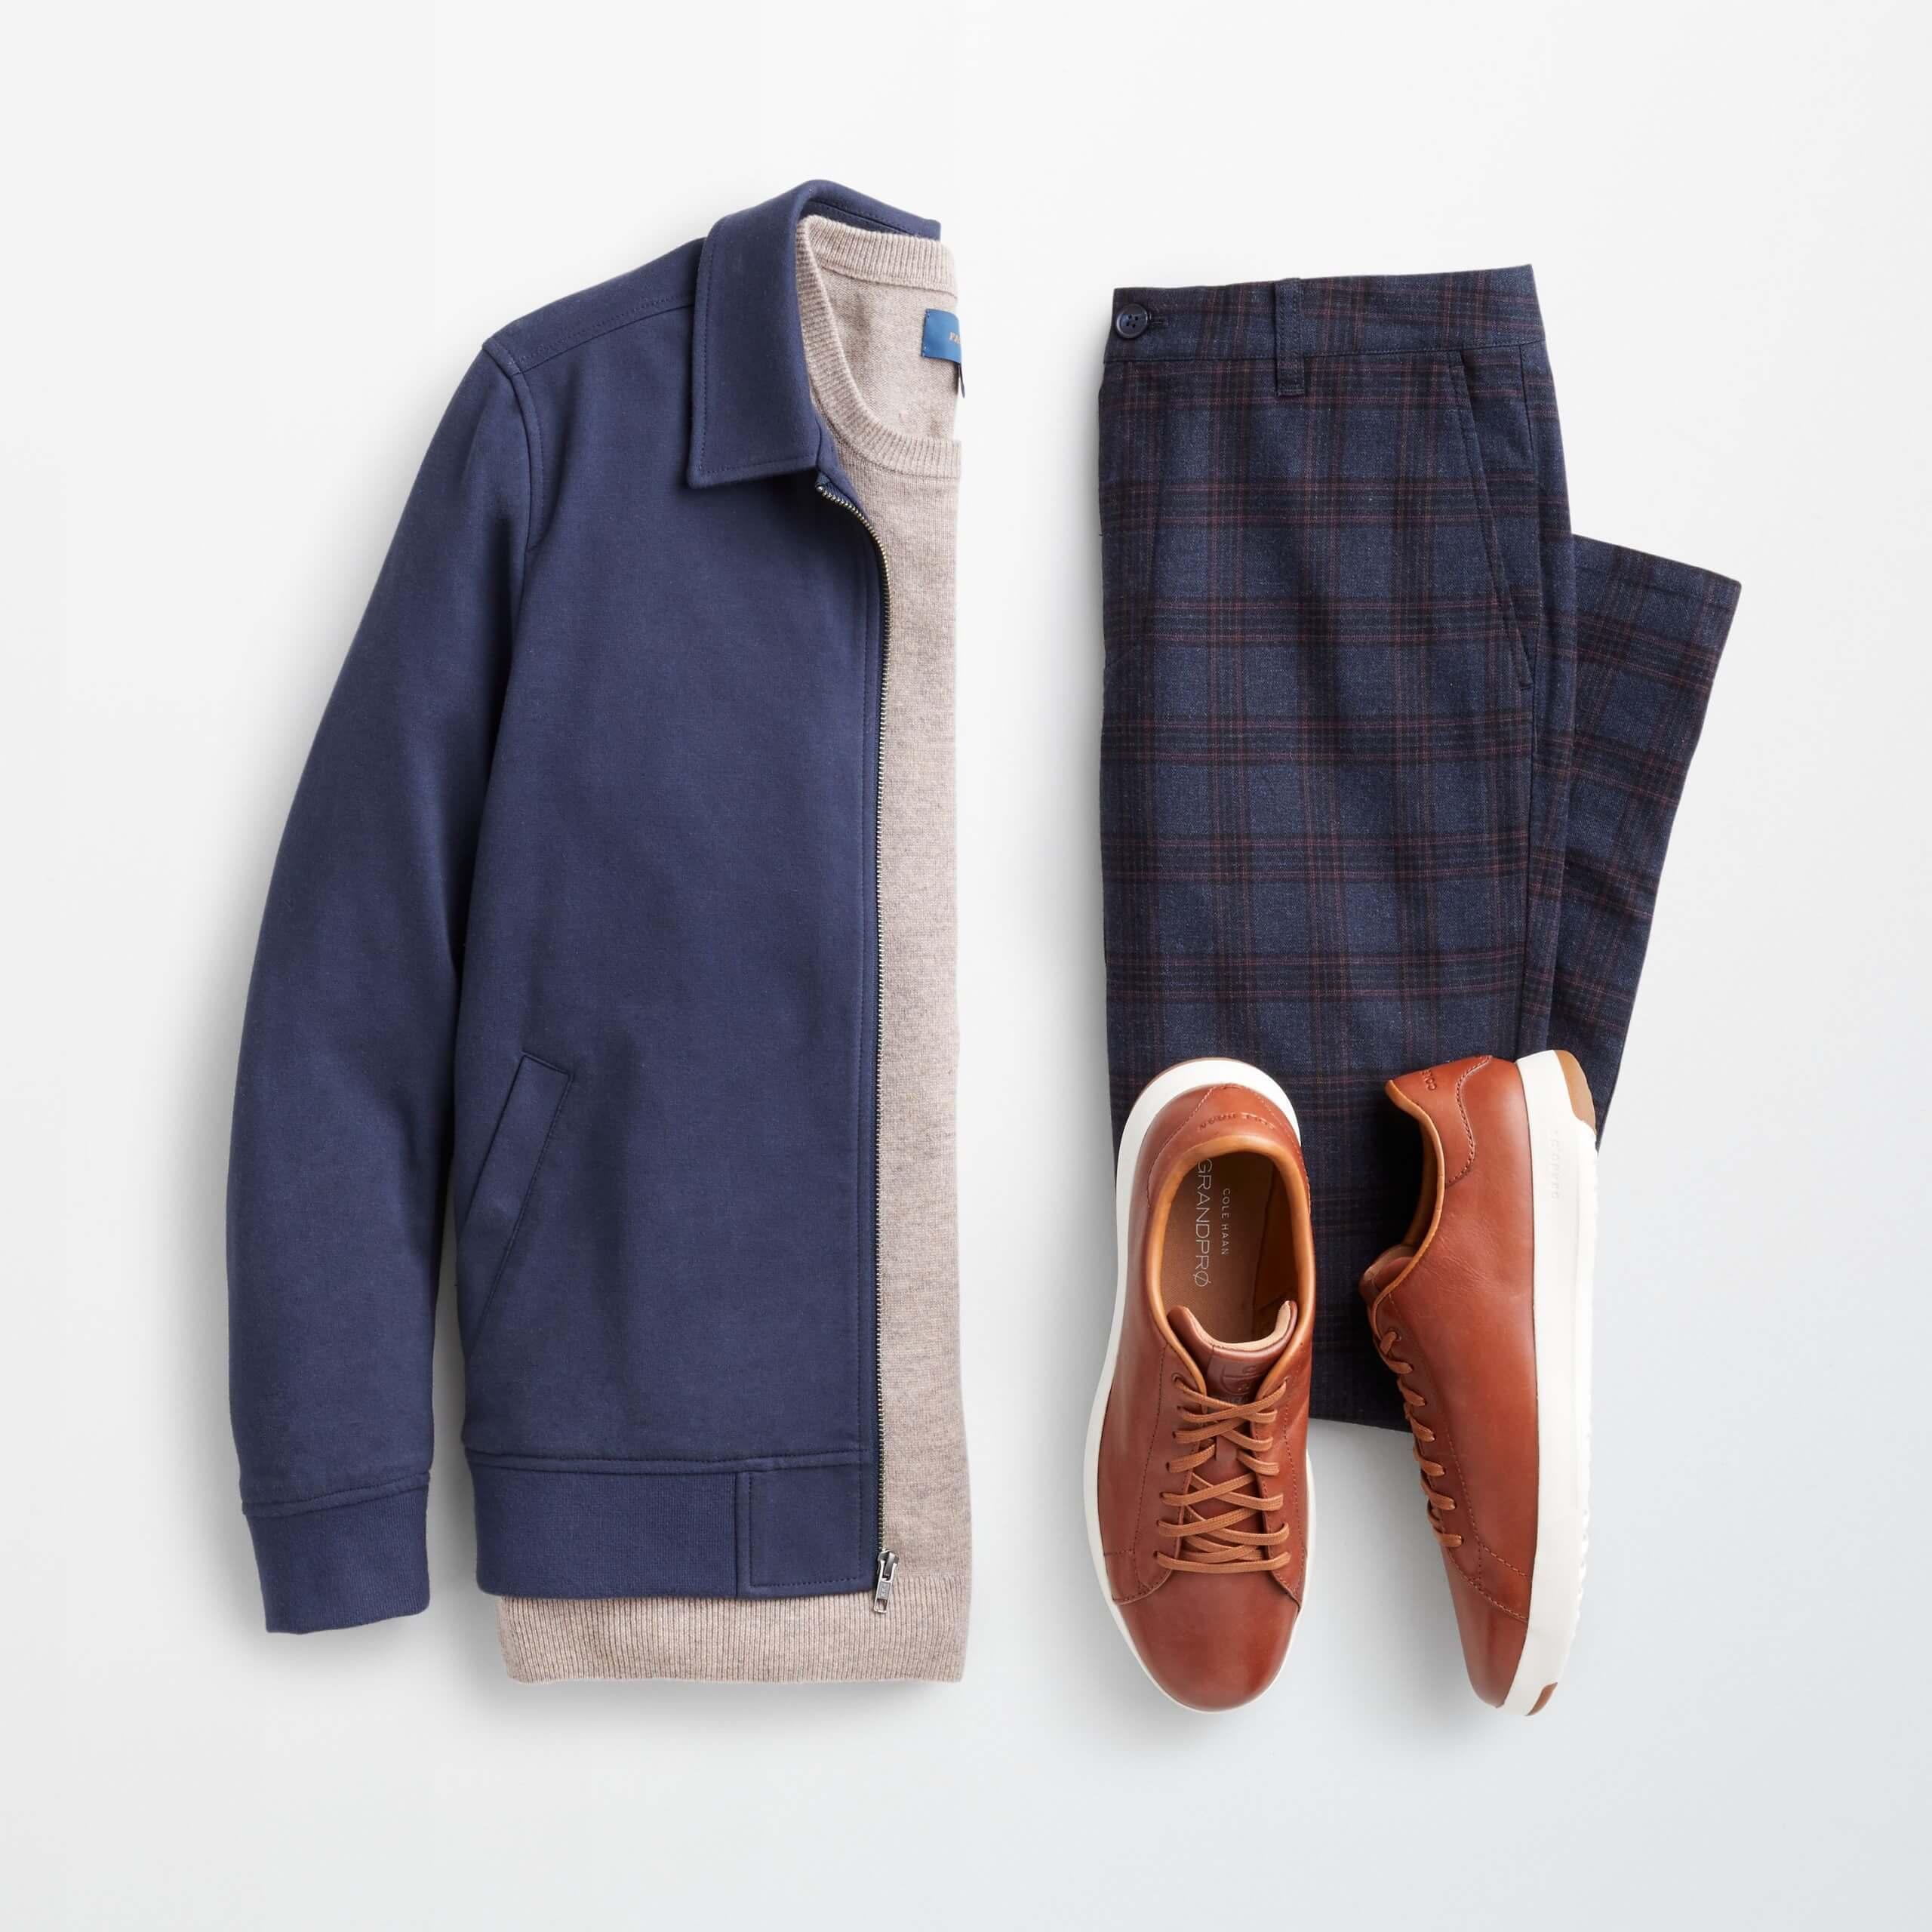 Stitch Fix Men's outfit laydown featuring navy harrington jacket over cream pullover sweater next to navy plaid chinos and brown leather sneakers.